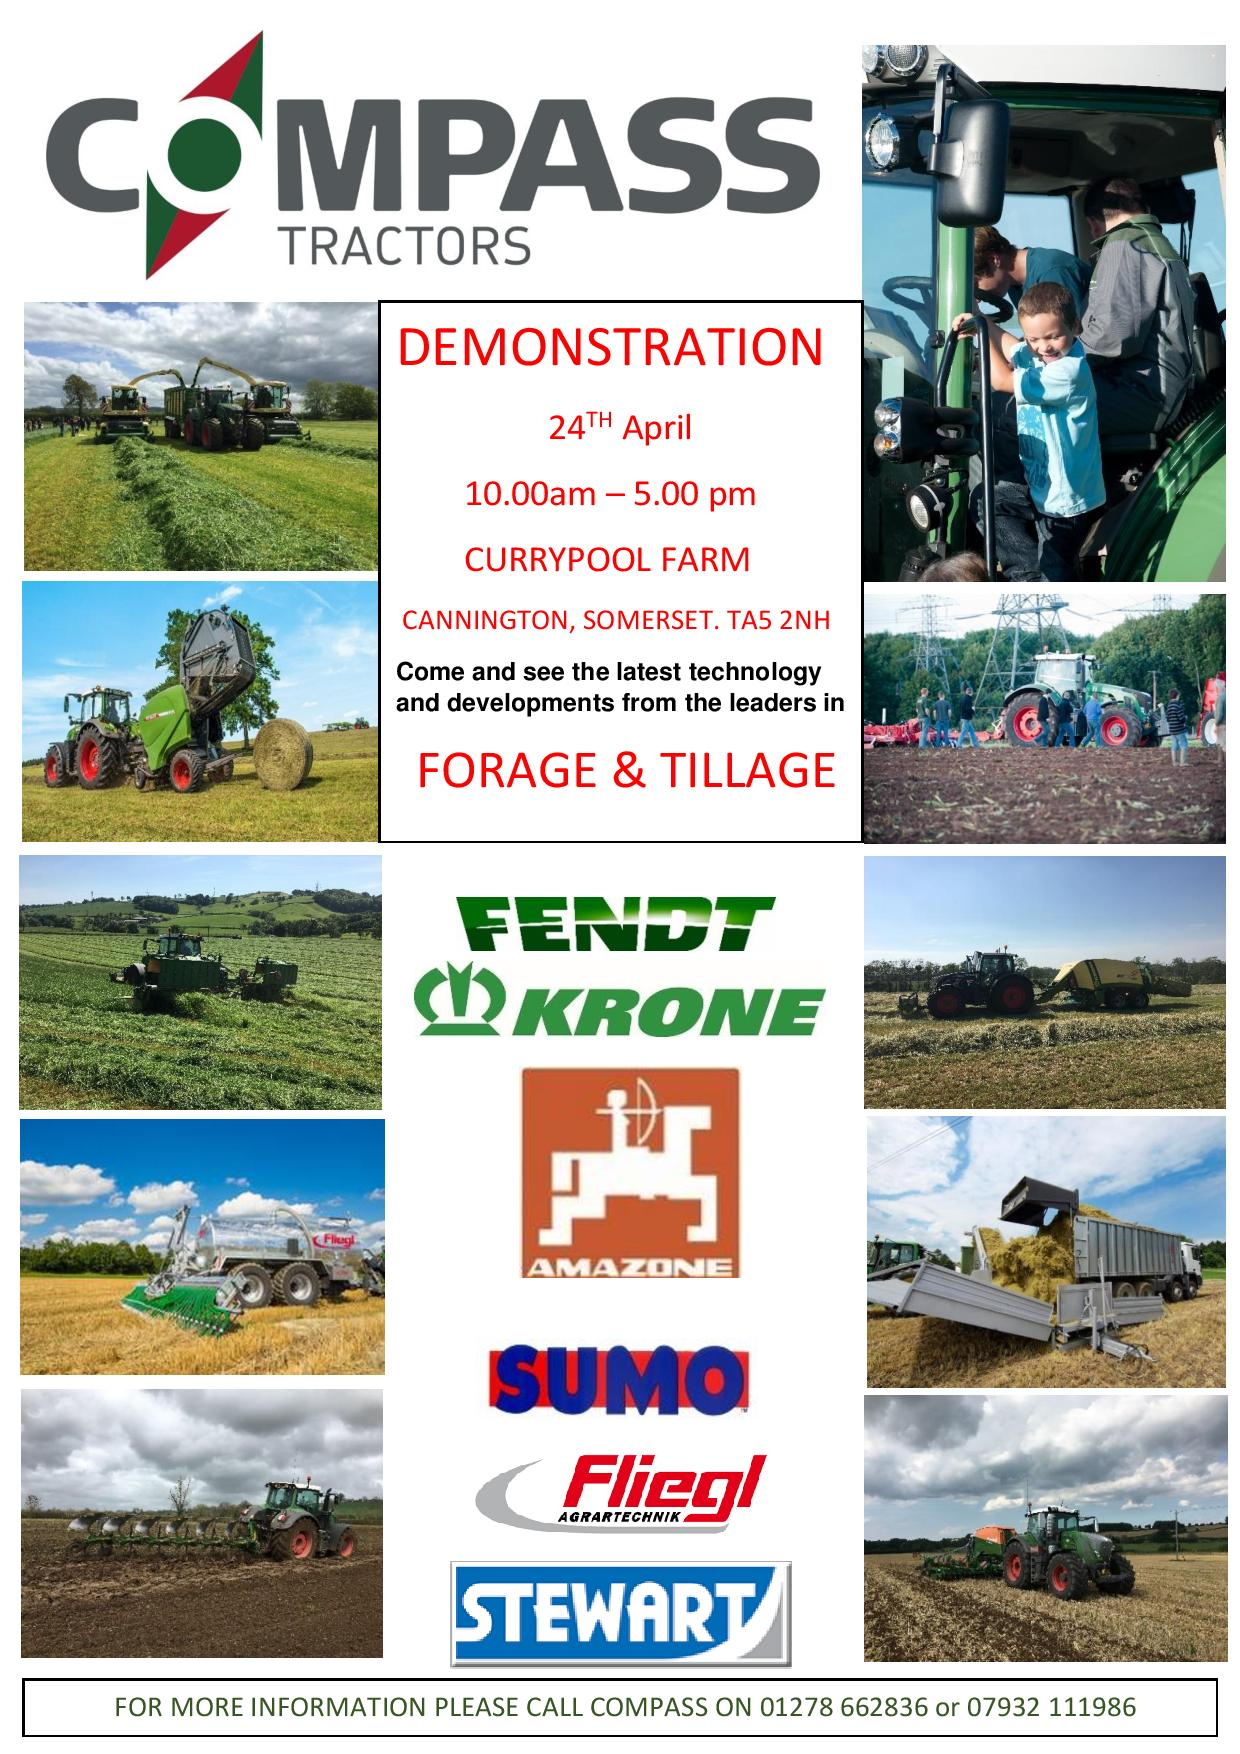 Compass Tractors Demo Day!